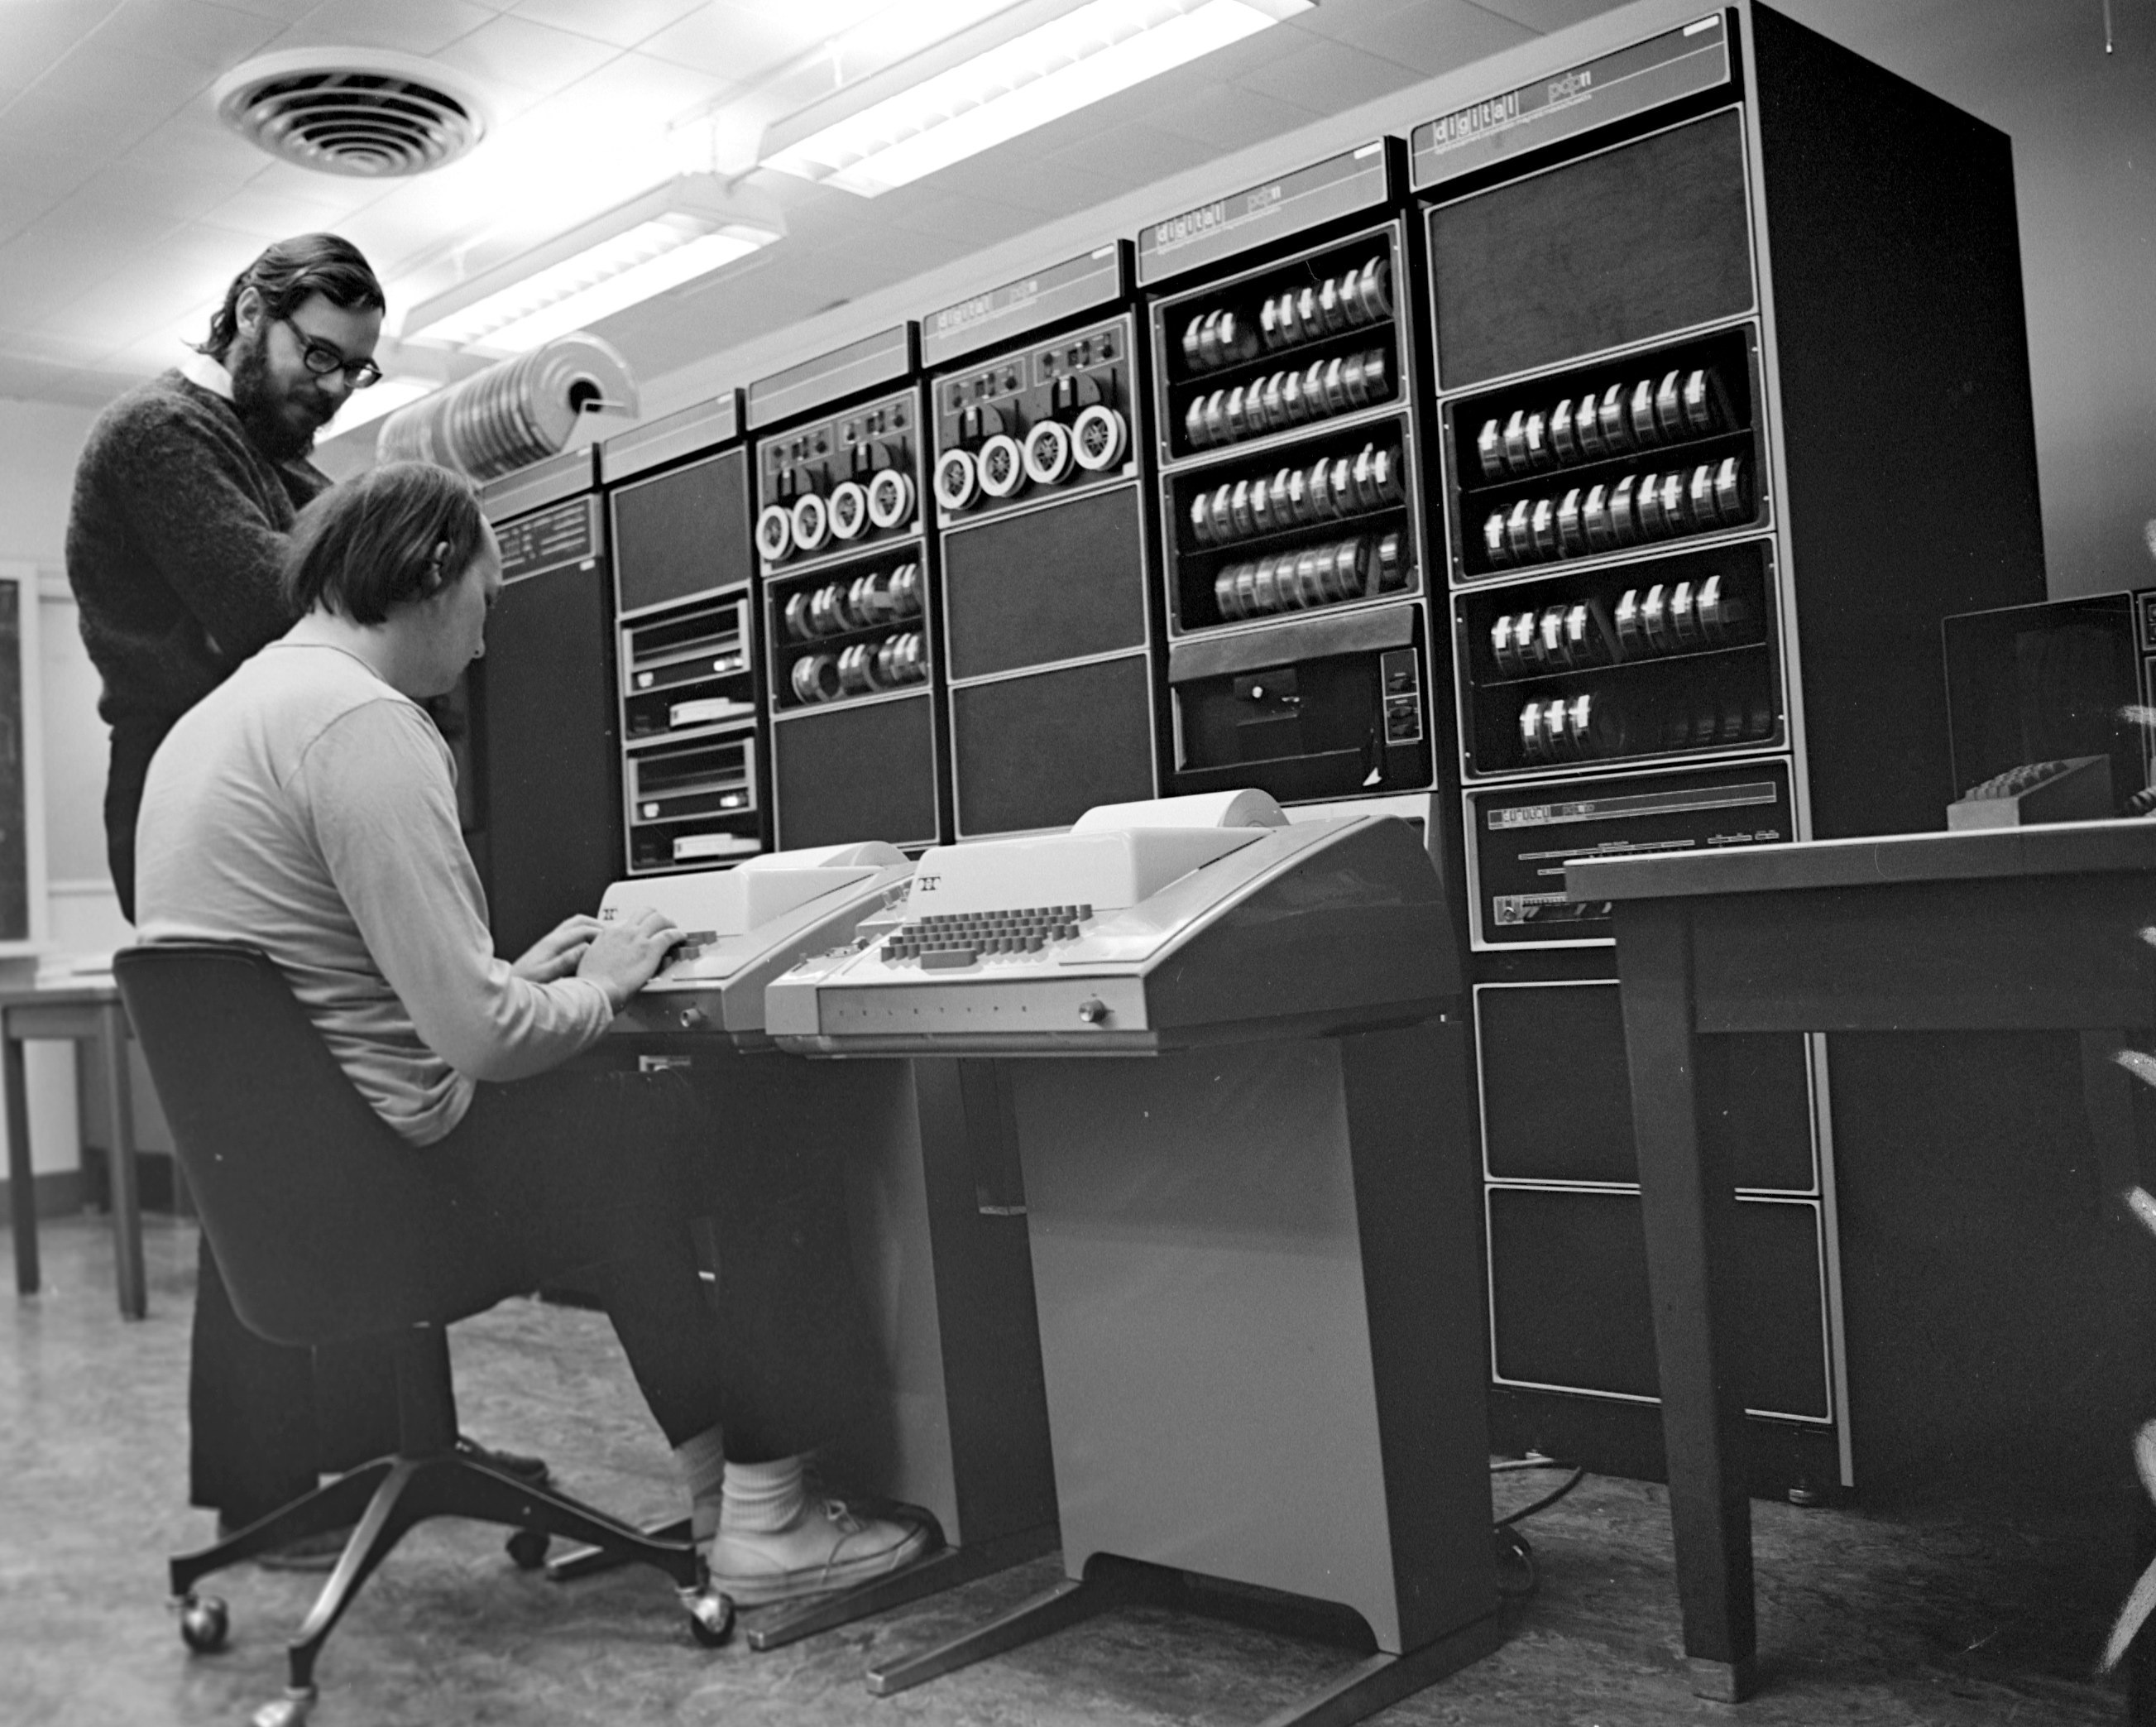 Ken Thompson and Dennis Ritchie sitting at a teletype in front of a PDP-11